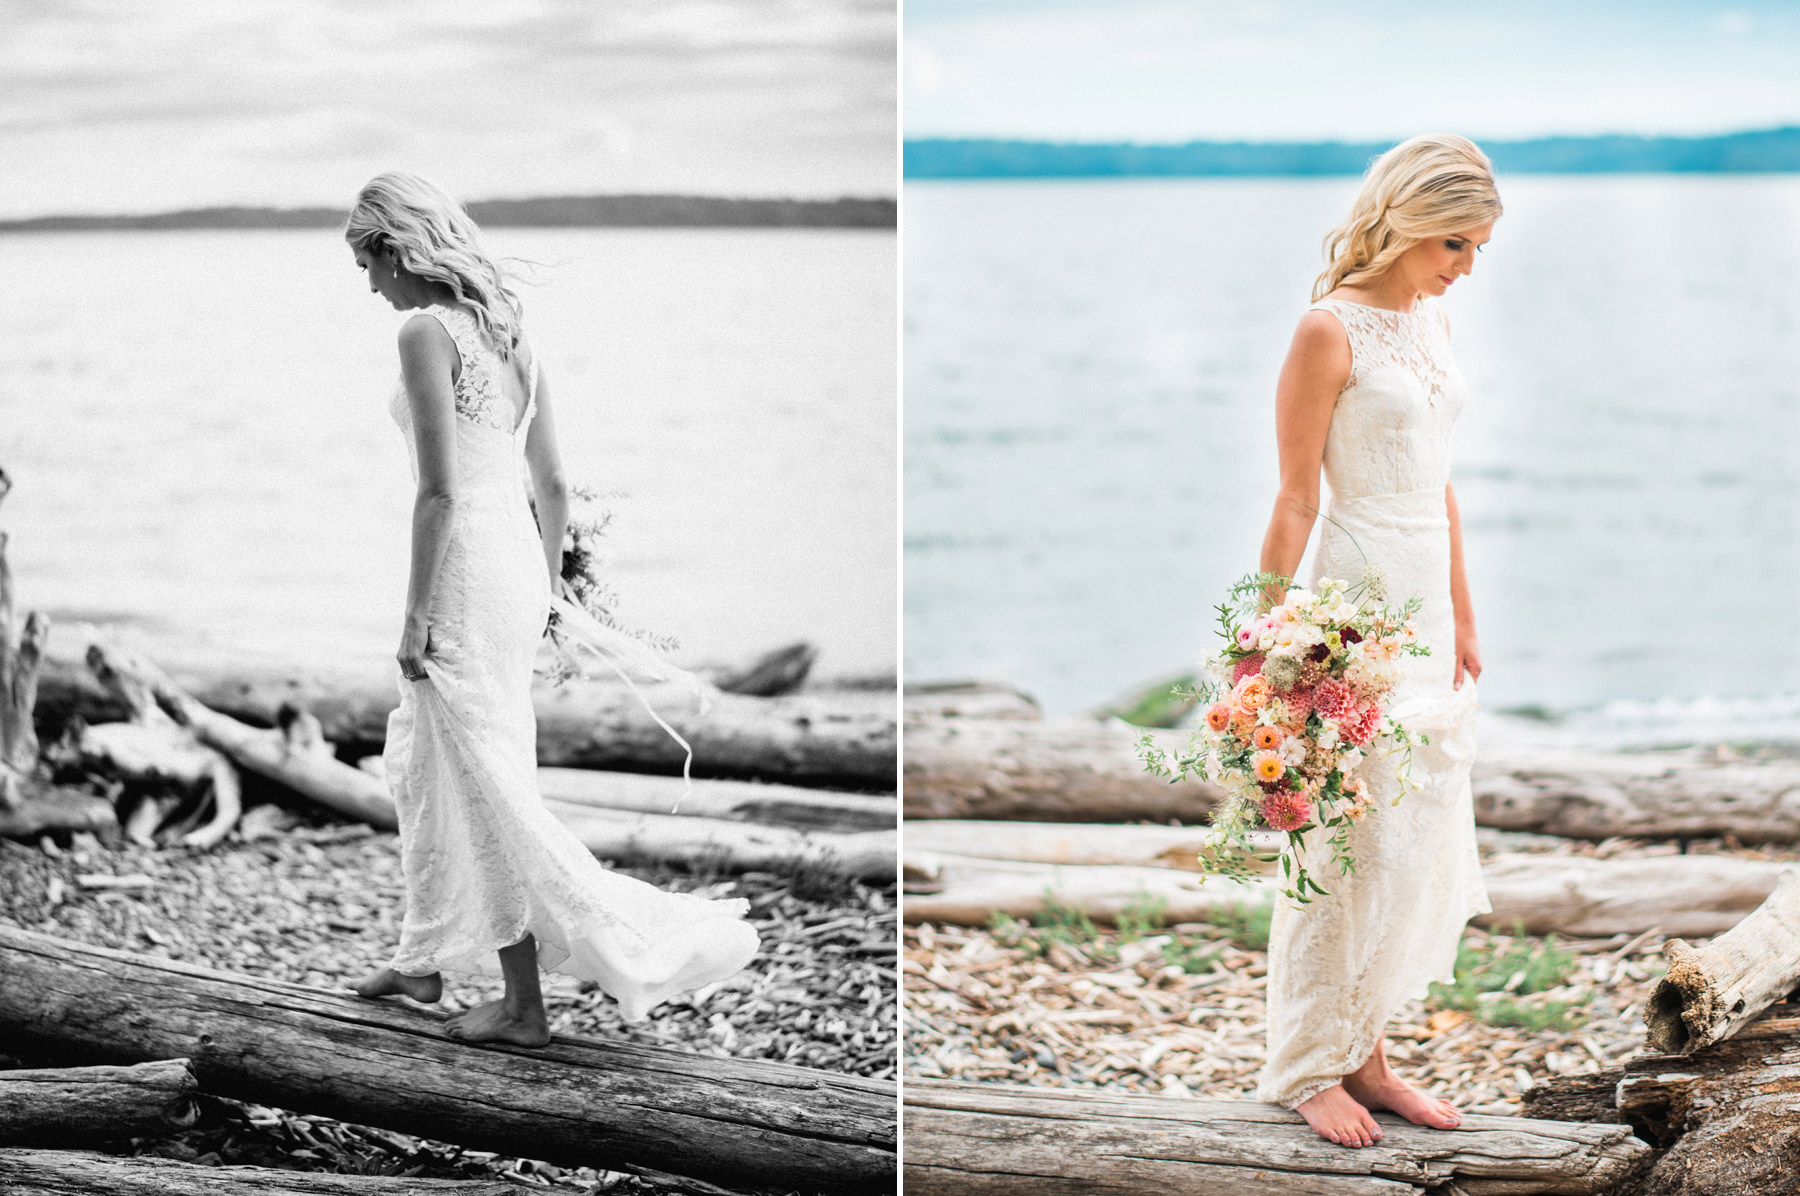 181-wedding-couple-walking-on-driftwood-holding-flowers-by-floret-floral.jpg